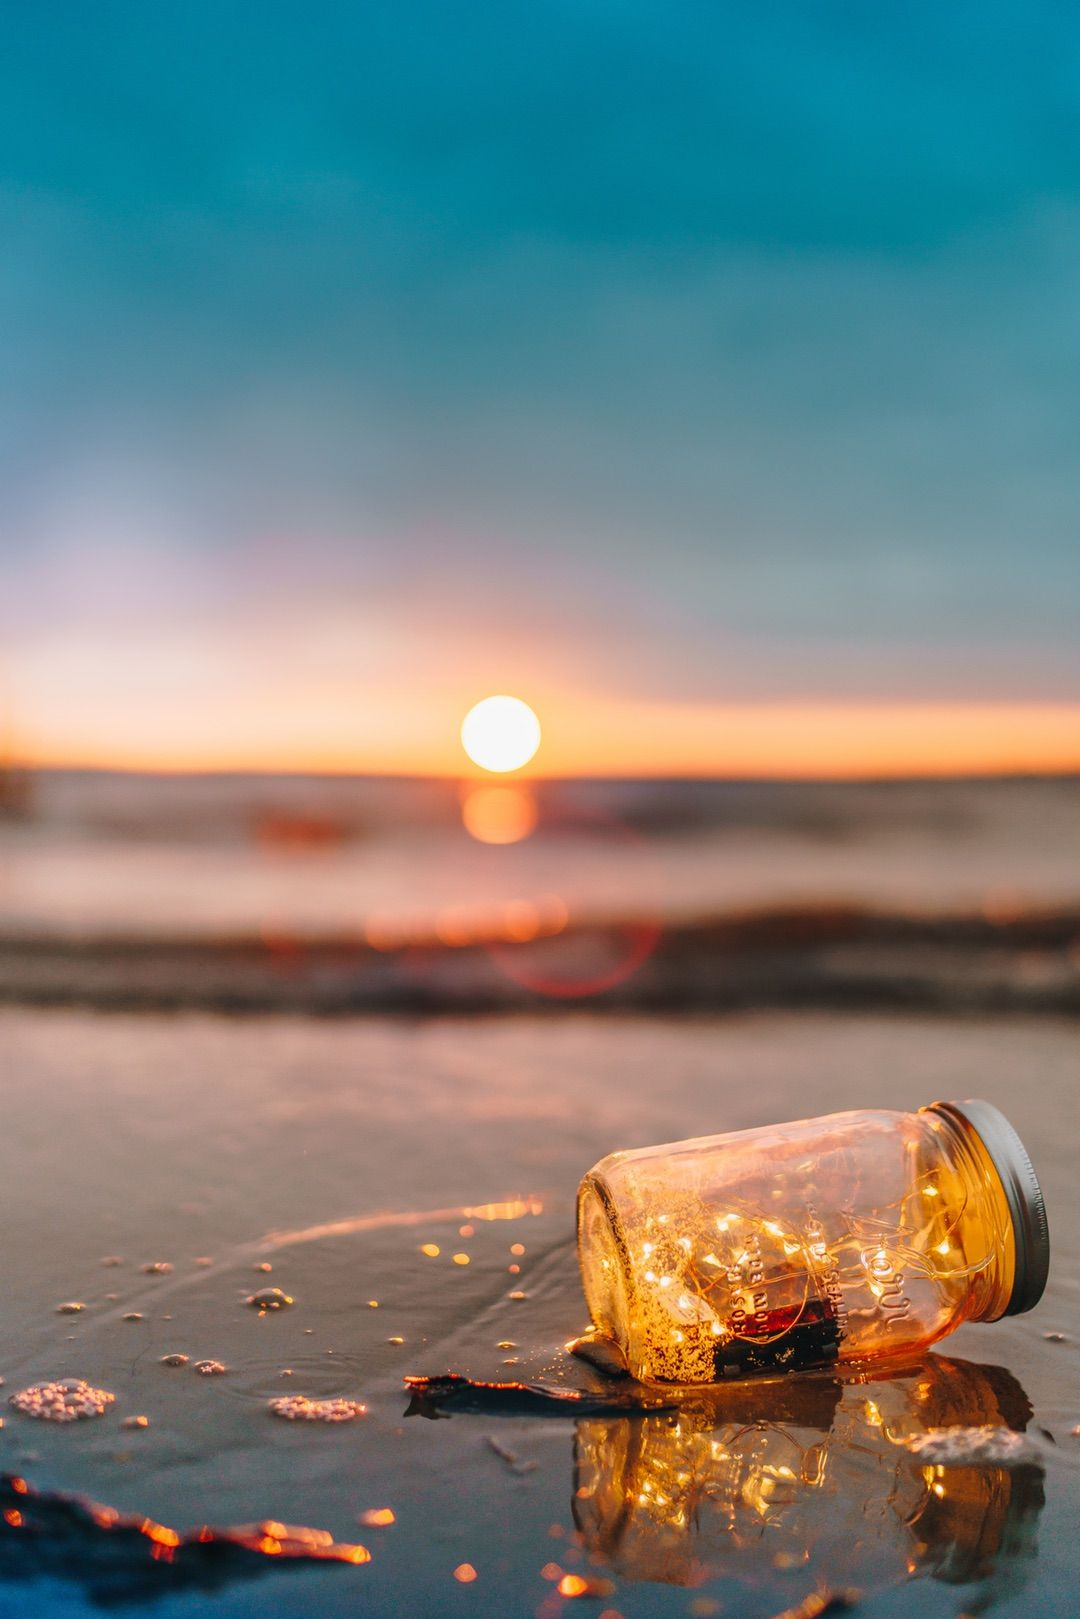 fairy lights, beach, bottle #fairylights